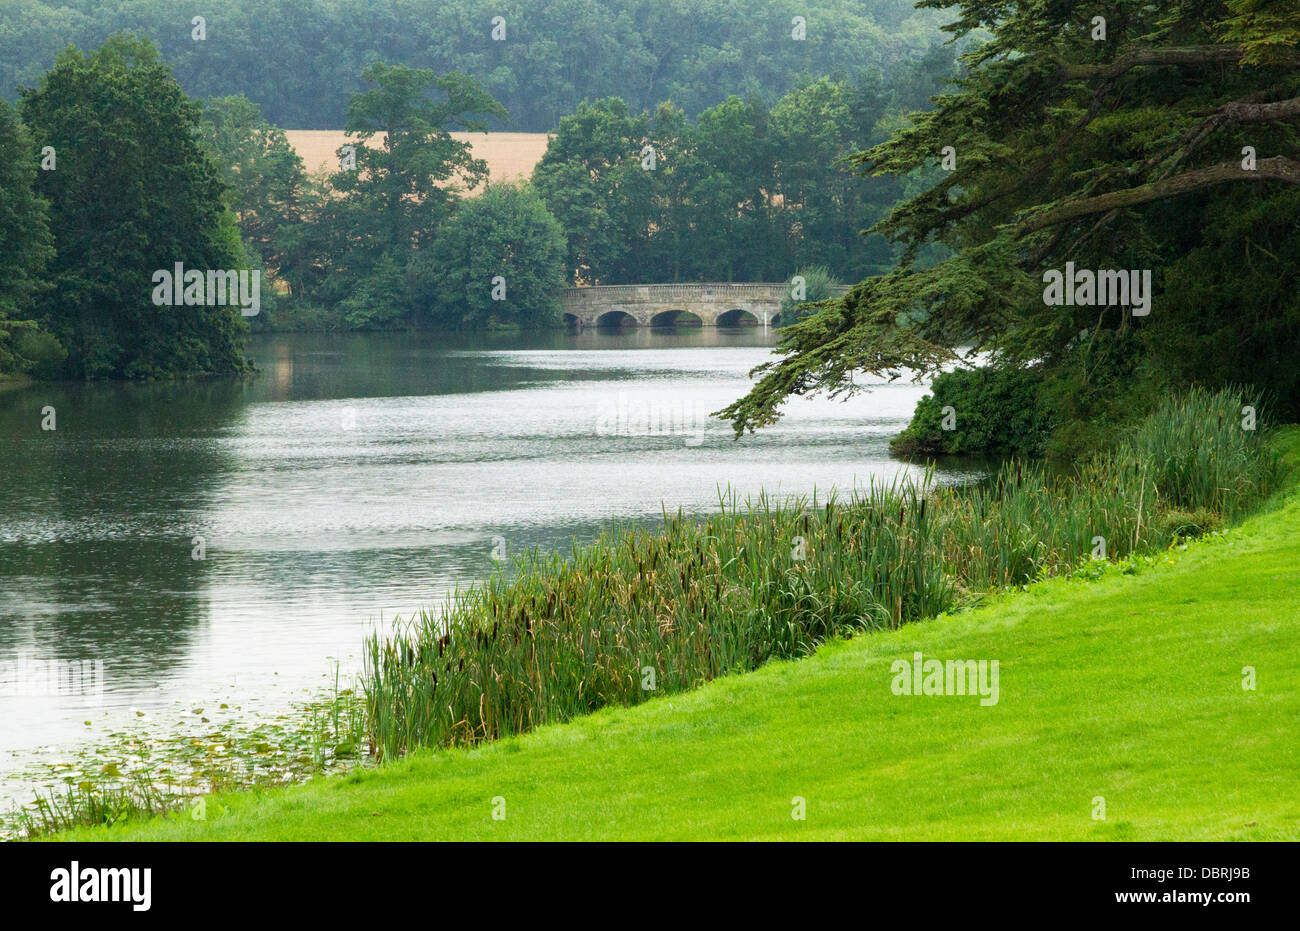 View of the Capability Brown Park at Compton Verney in Warwickshire England - Stock Image